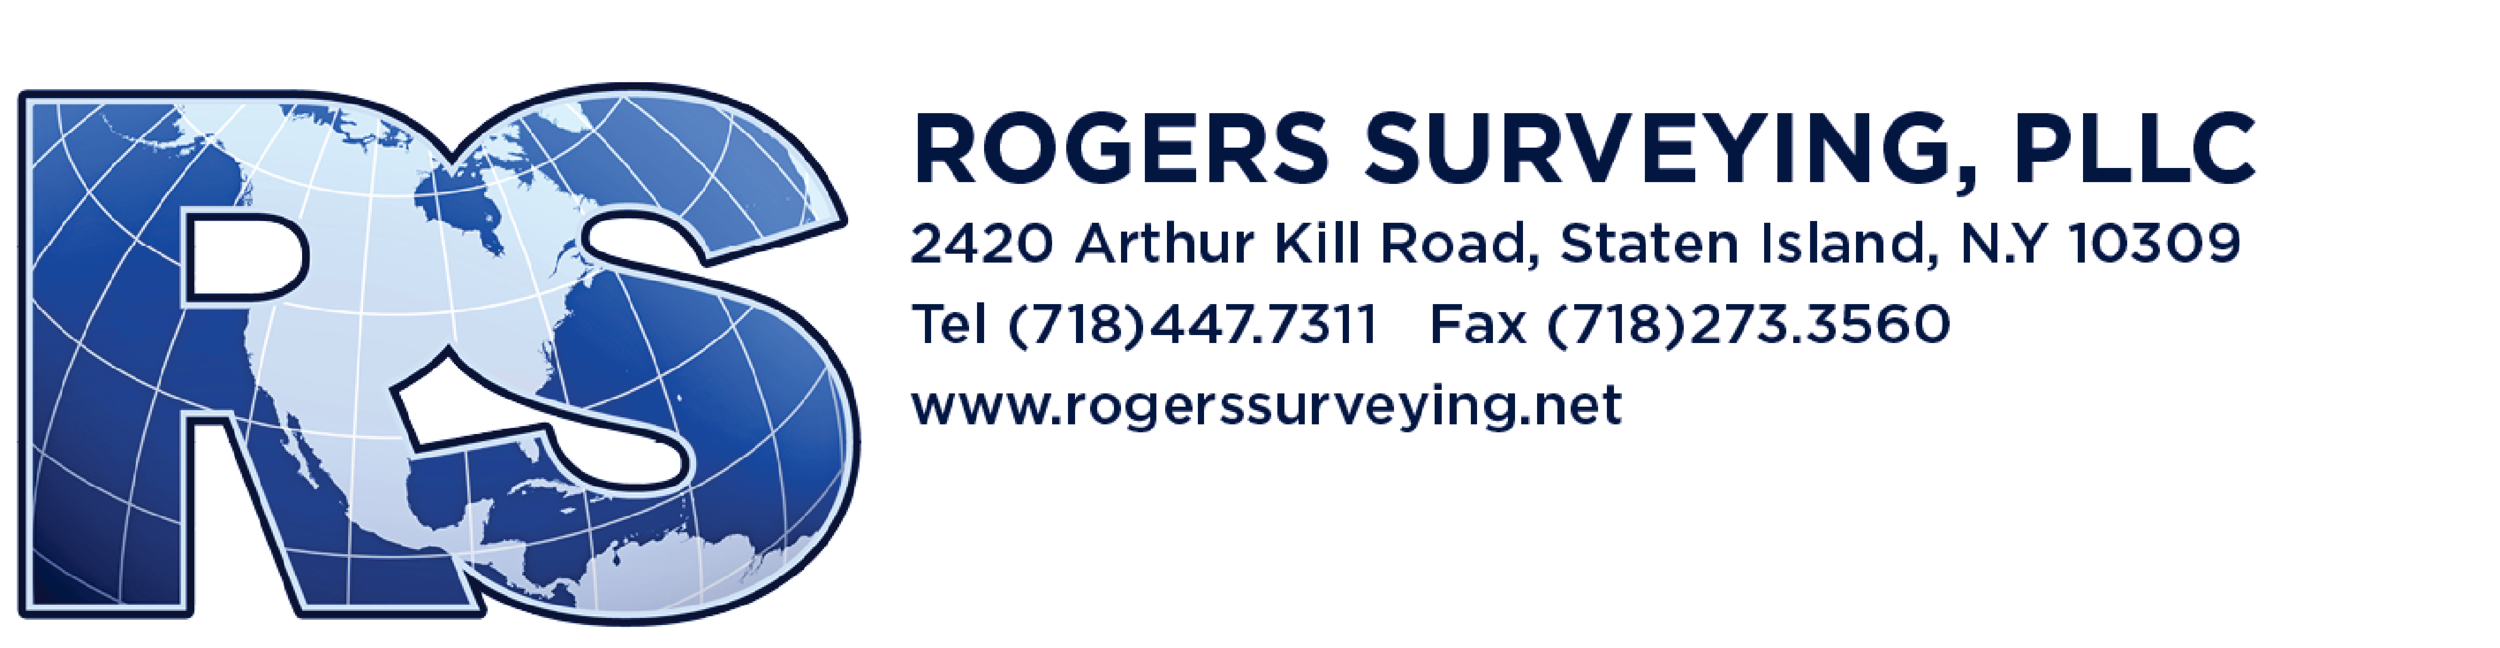 Rogers Logo.png